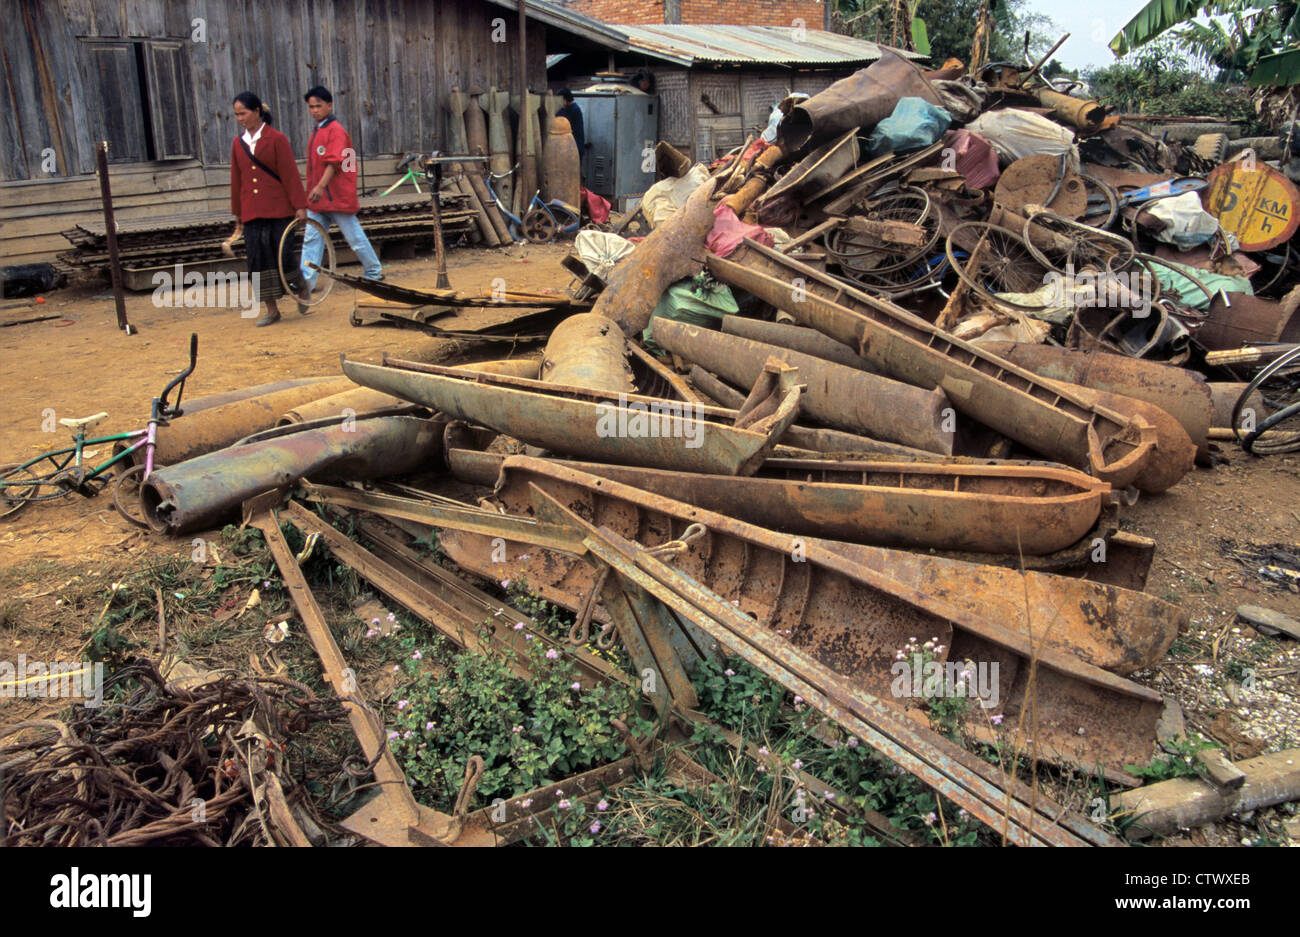 War Waste and Scrap Metal of US Cluster Bombs or Bomb Casings Piled up in Scrap Yard Phonsavan Xieng Khuang Laos Stock Photo